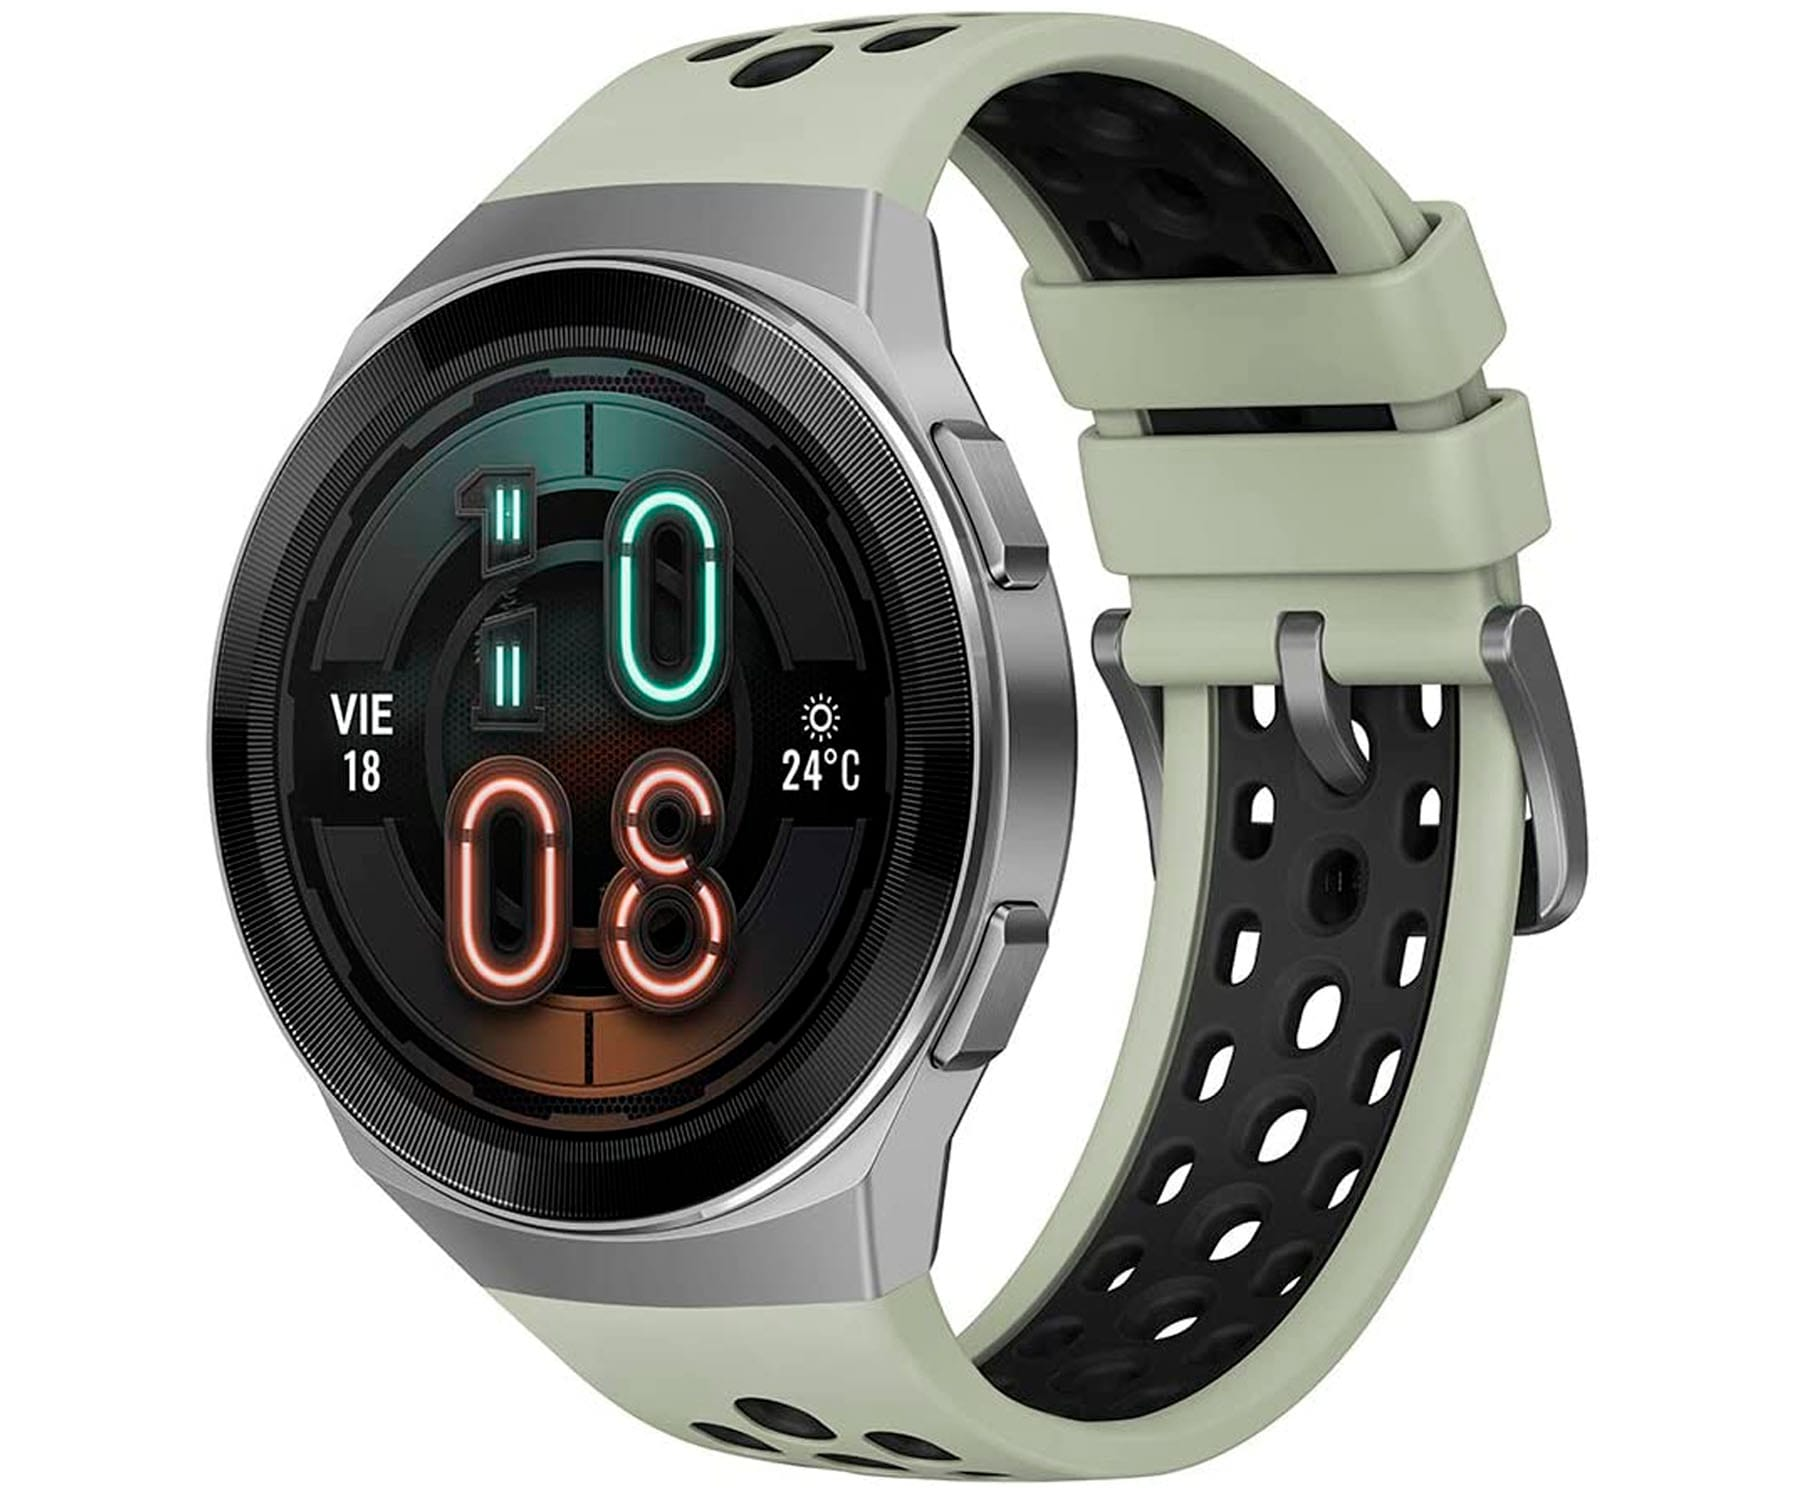 HUAWEI WATCH GT 2e SPORT MENTA SMARTWATCH TÁCTIL AMOLED 1.39'' GPS 5ATM BLUETOOTH